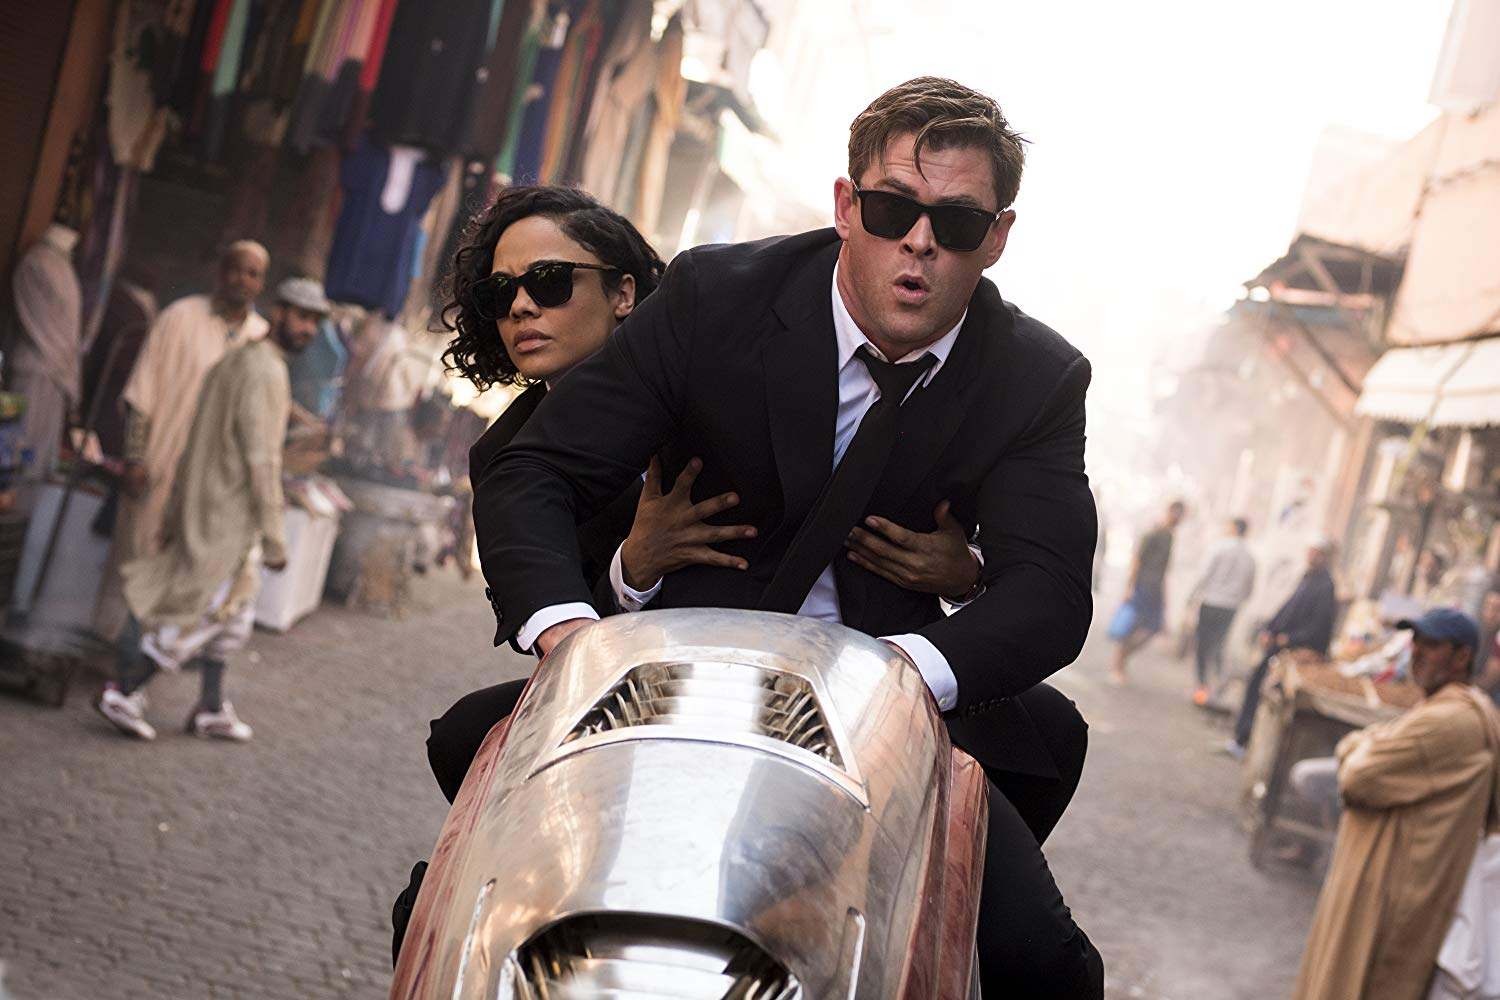 Tessa Thompson and Chris Hemsworth in Men in Black International